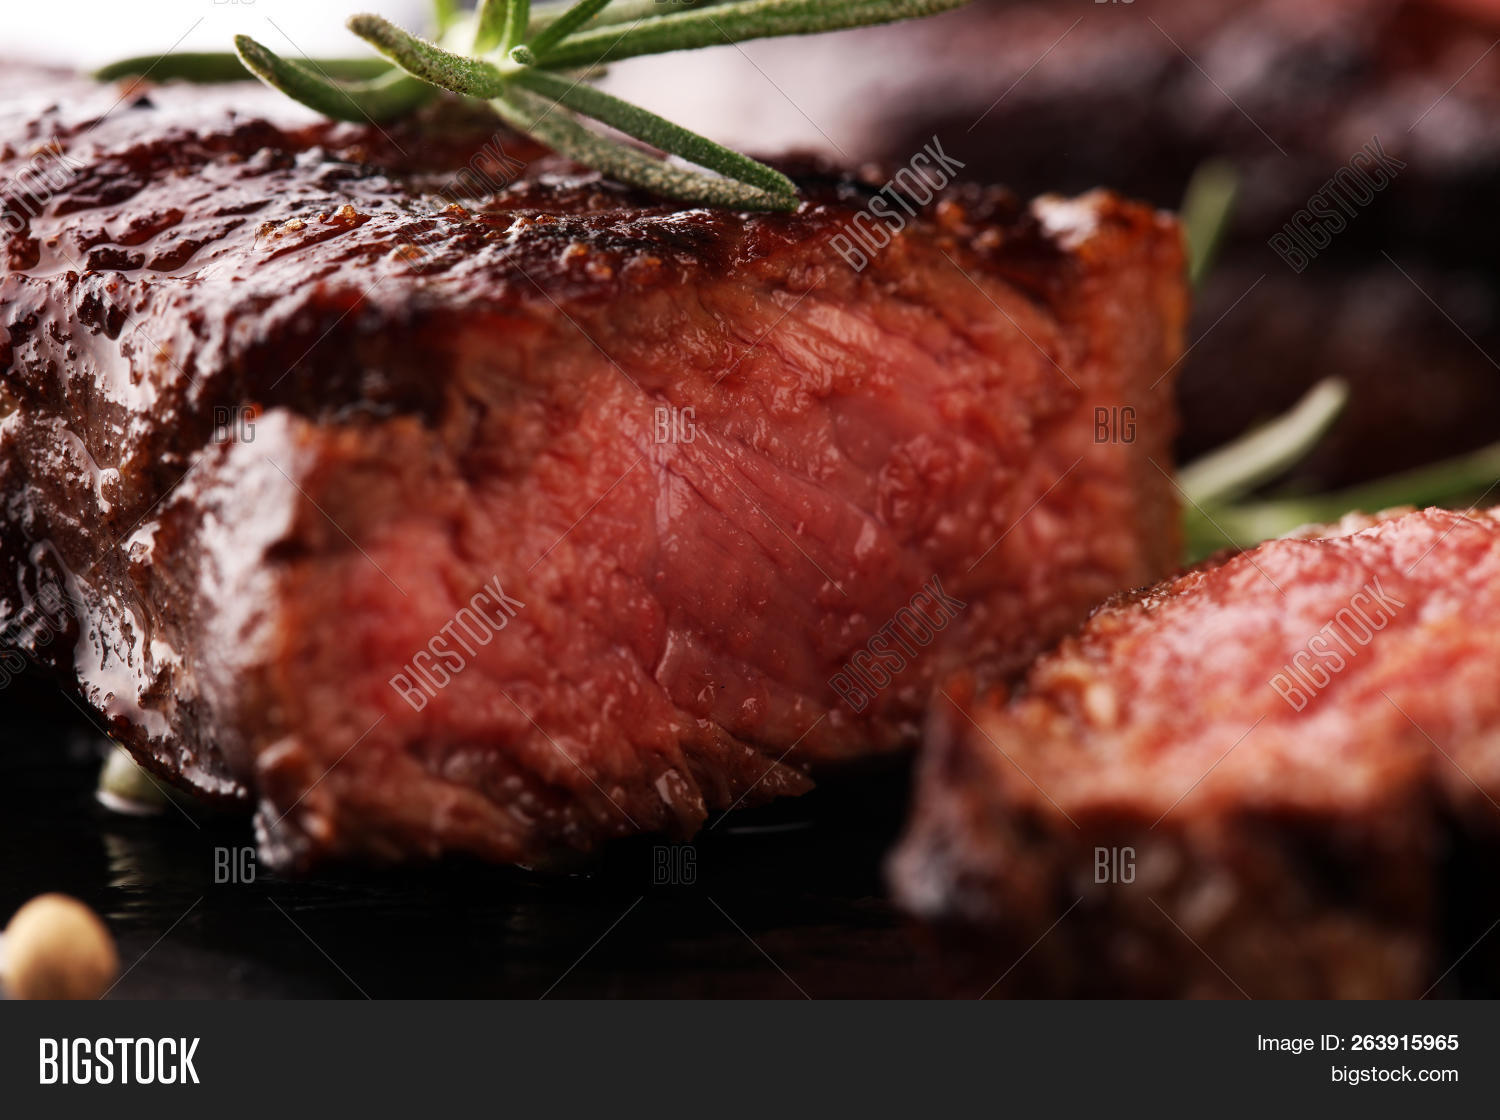 Barbecue Rib Eye Steak Image & Photo (Free Trial) | Bigstock